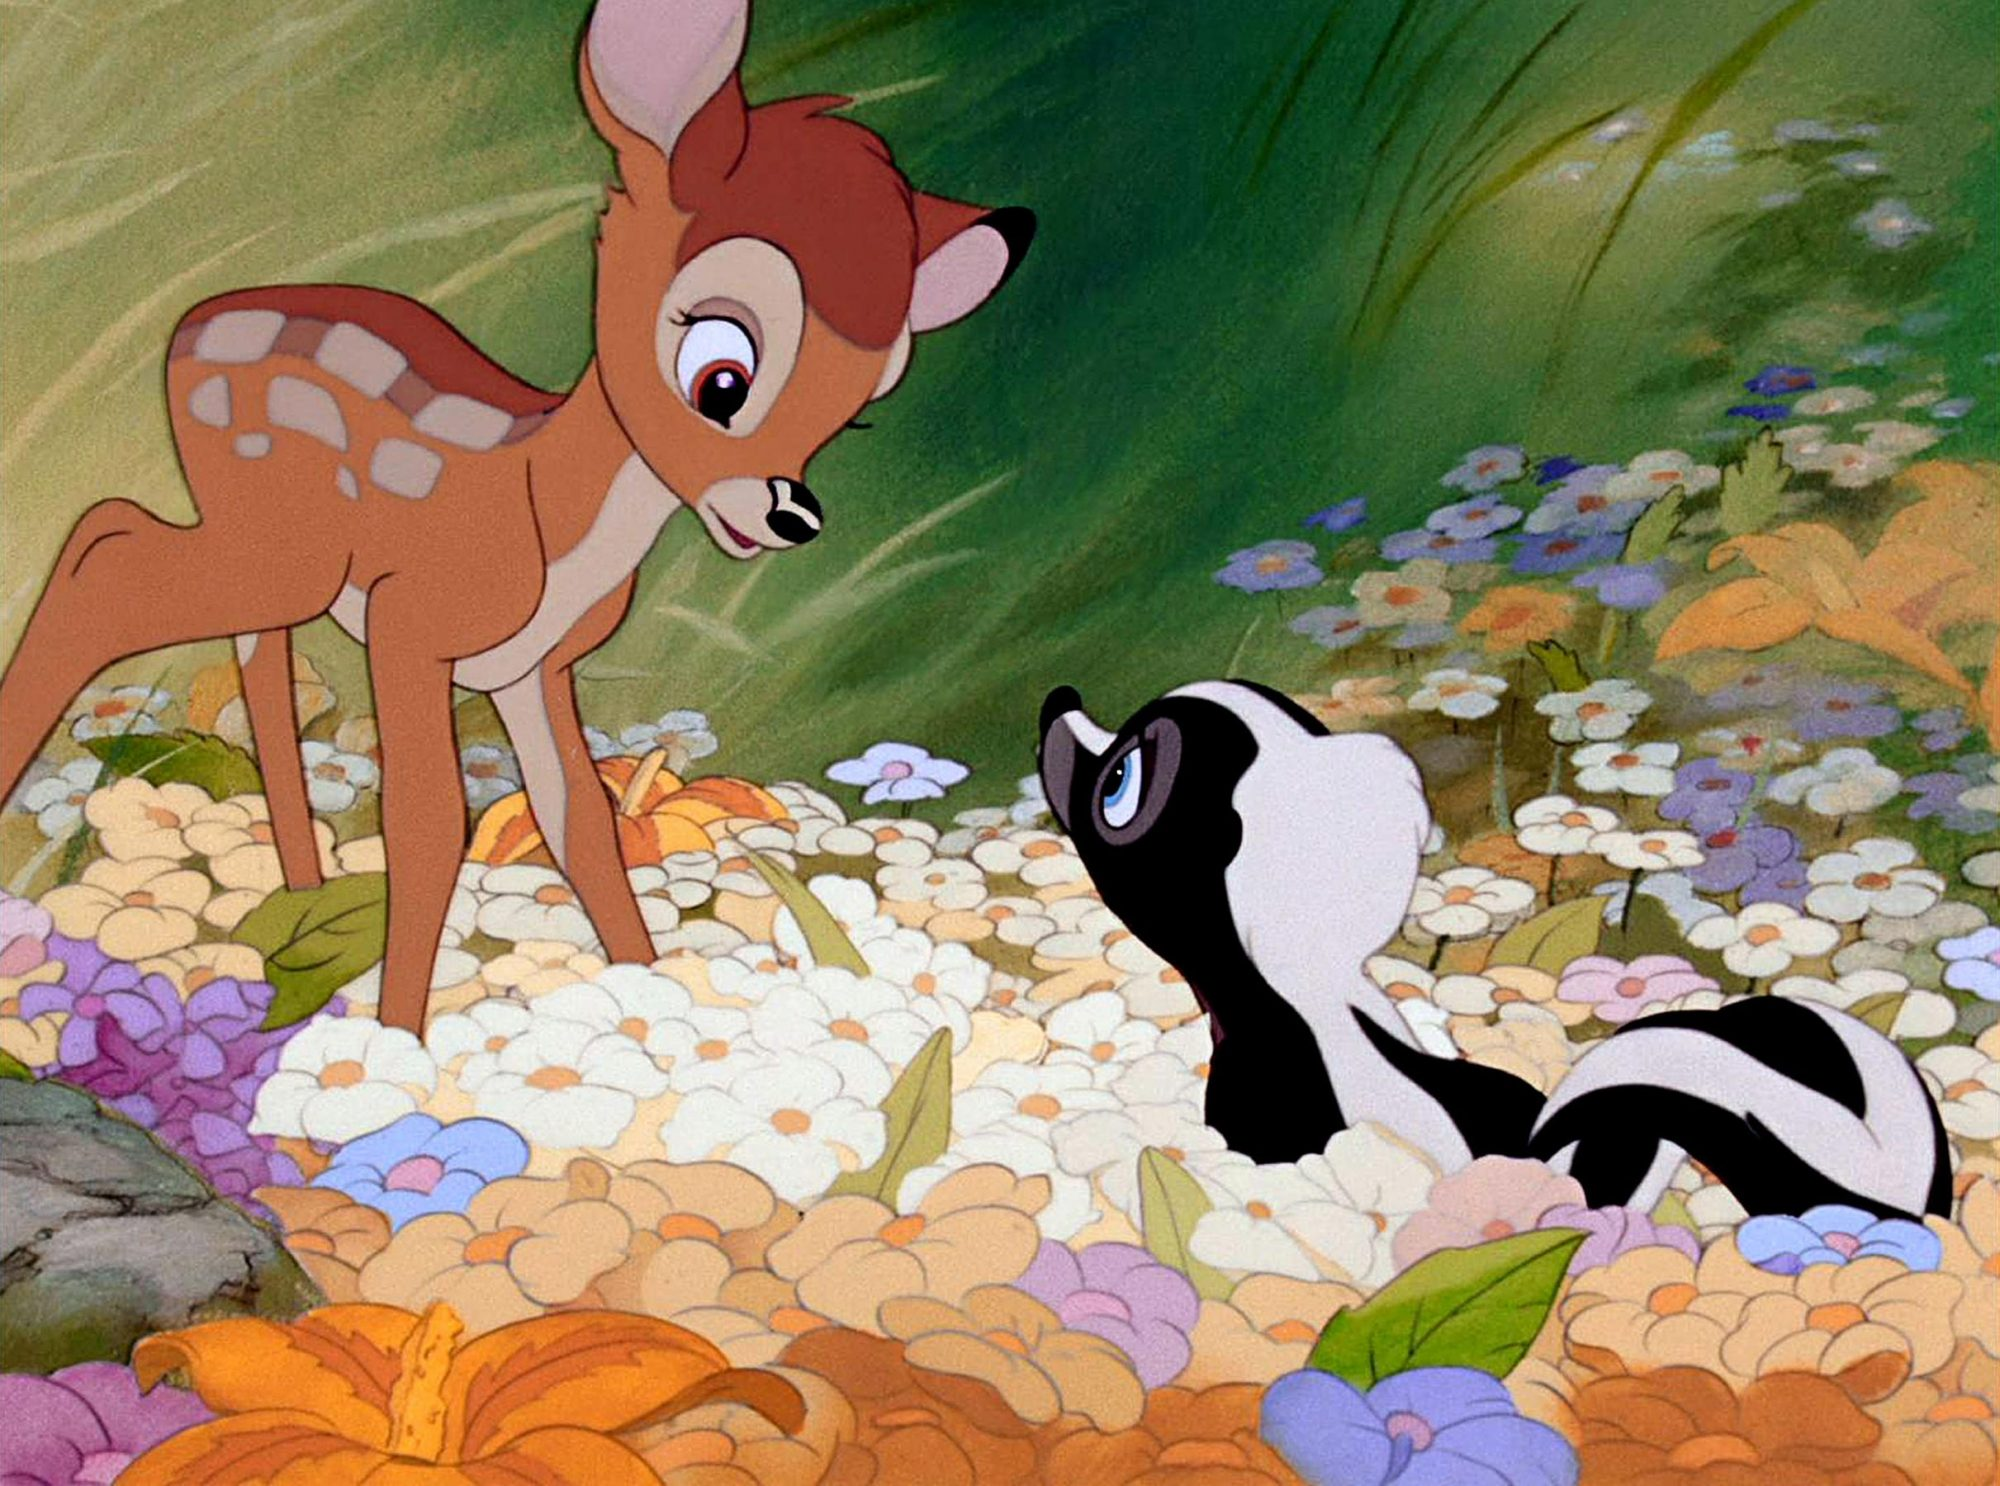 BAMBI, Bambi, Flower, 1942. © Walt Disney / Courtesy: Everett Collection